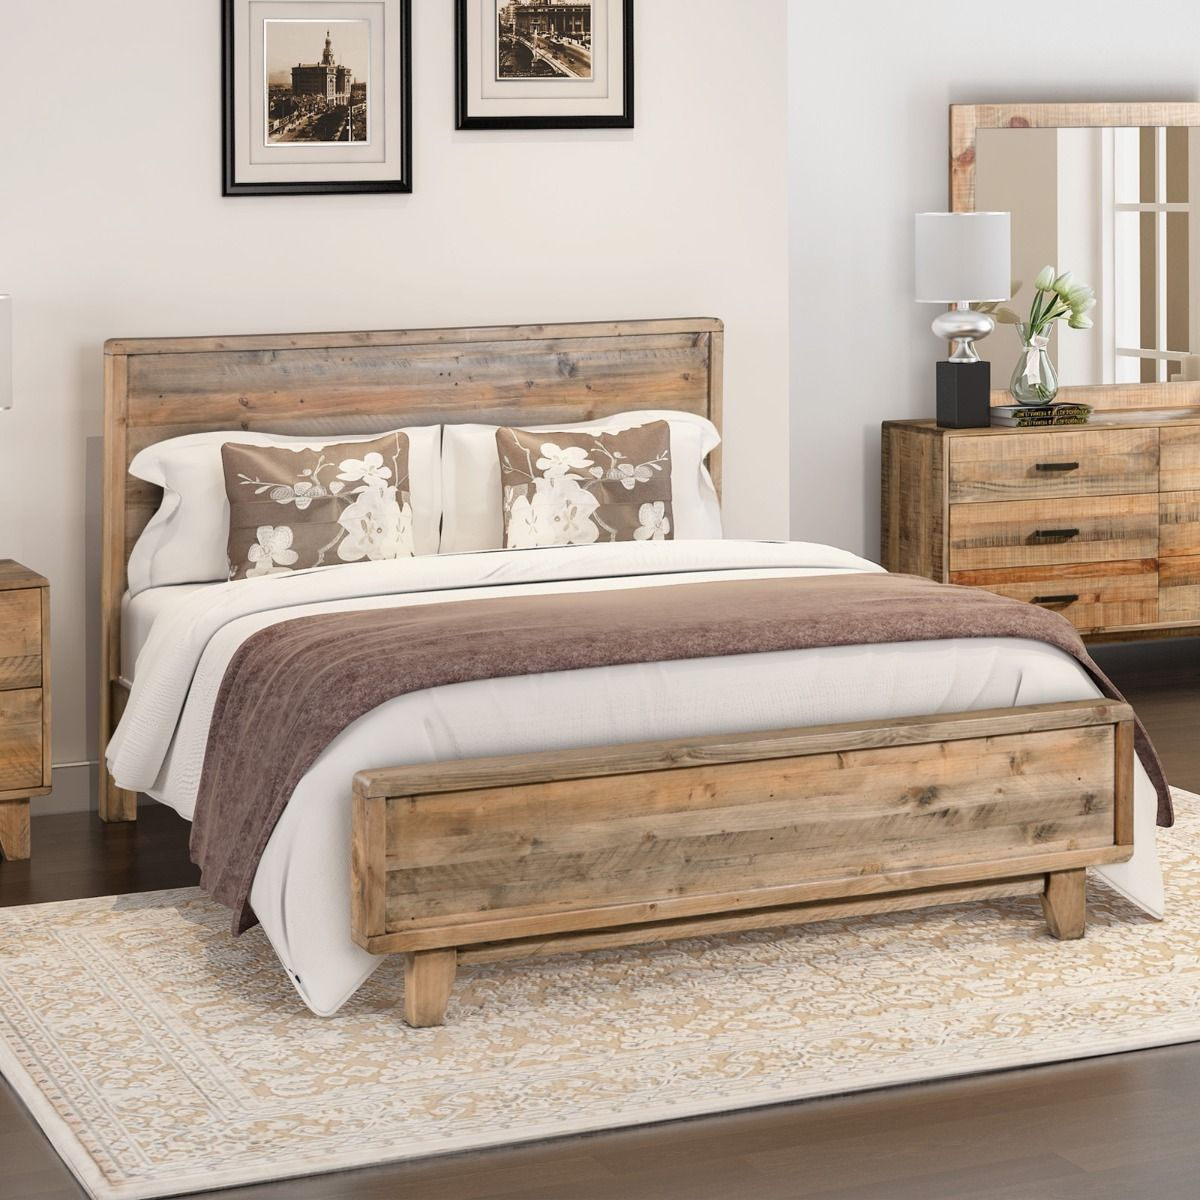 Woodstyle Bedroom Furniture Timber Bed Frame Queen Bed